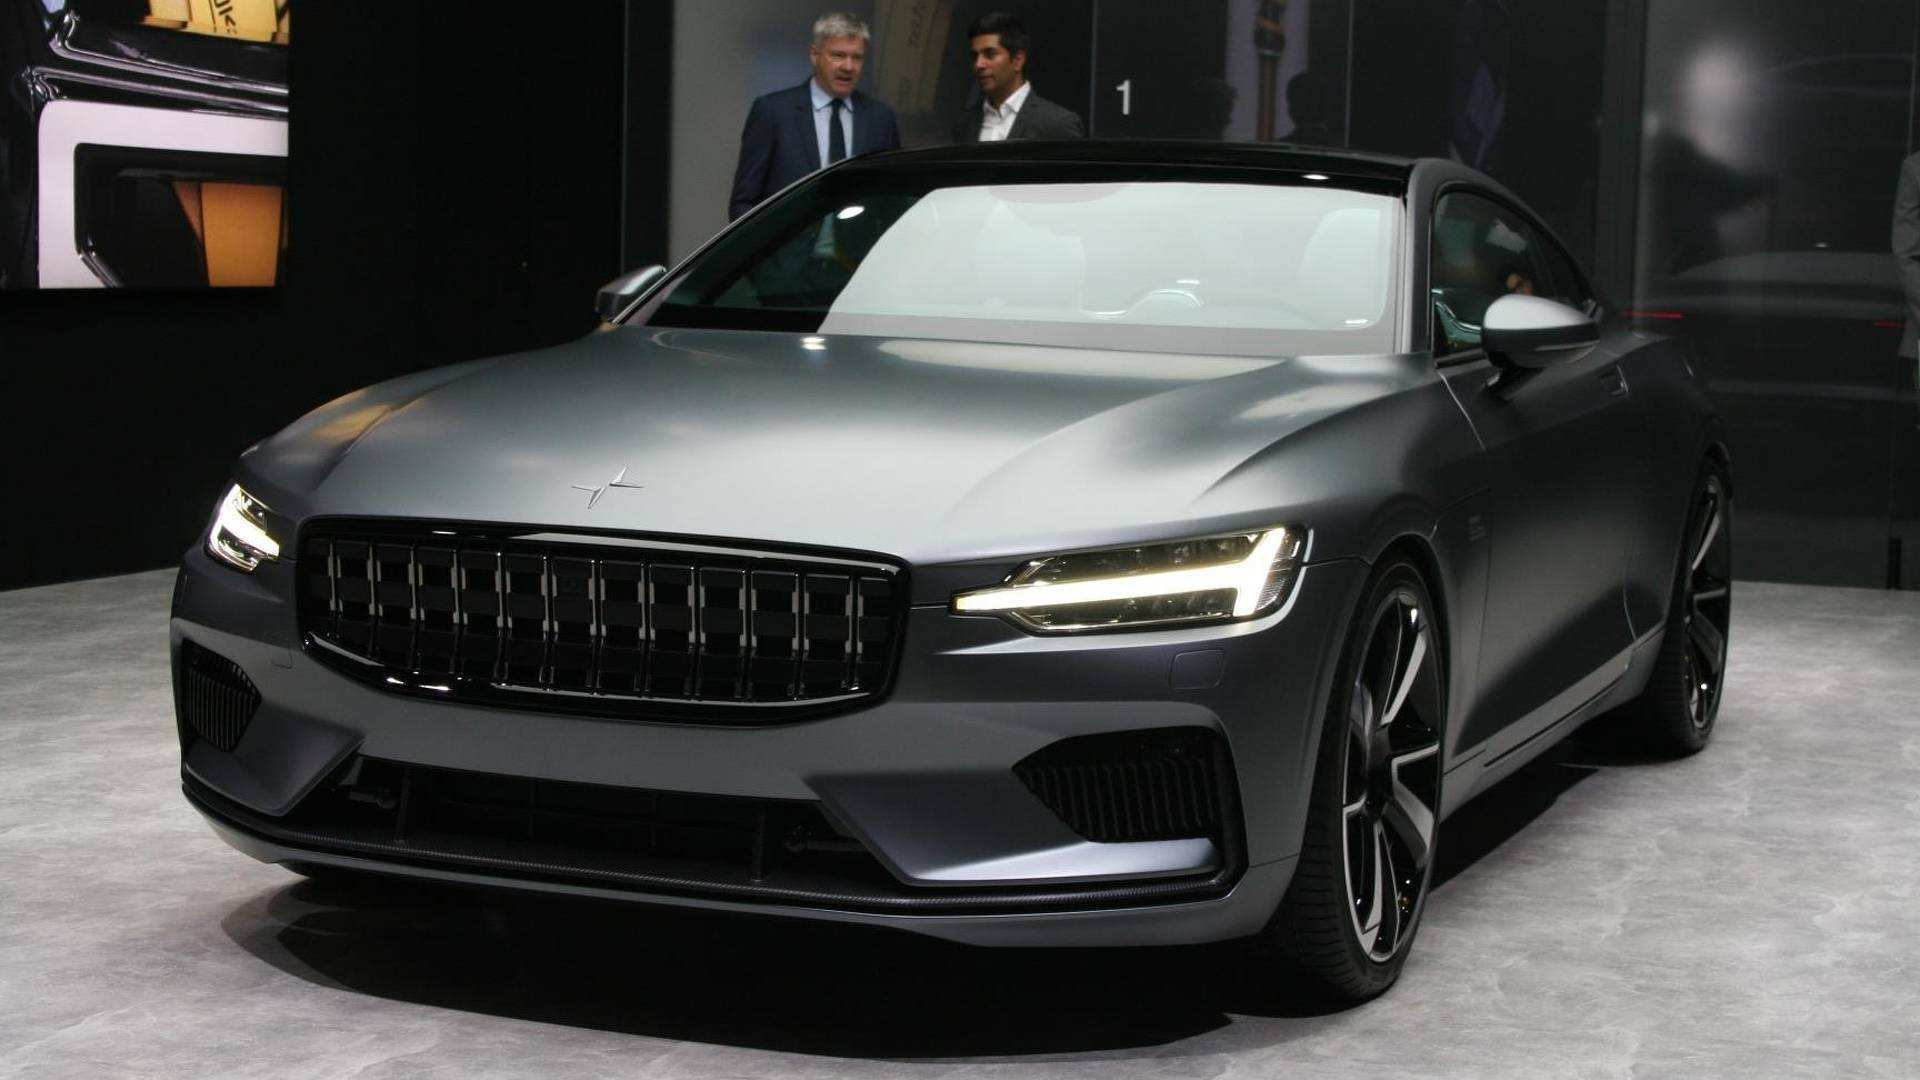 70 Best Review 2019 Volvo Polestar 1 Engine with 2019 Volvo Polestar 1